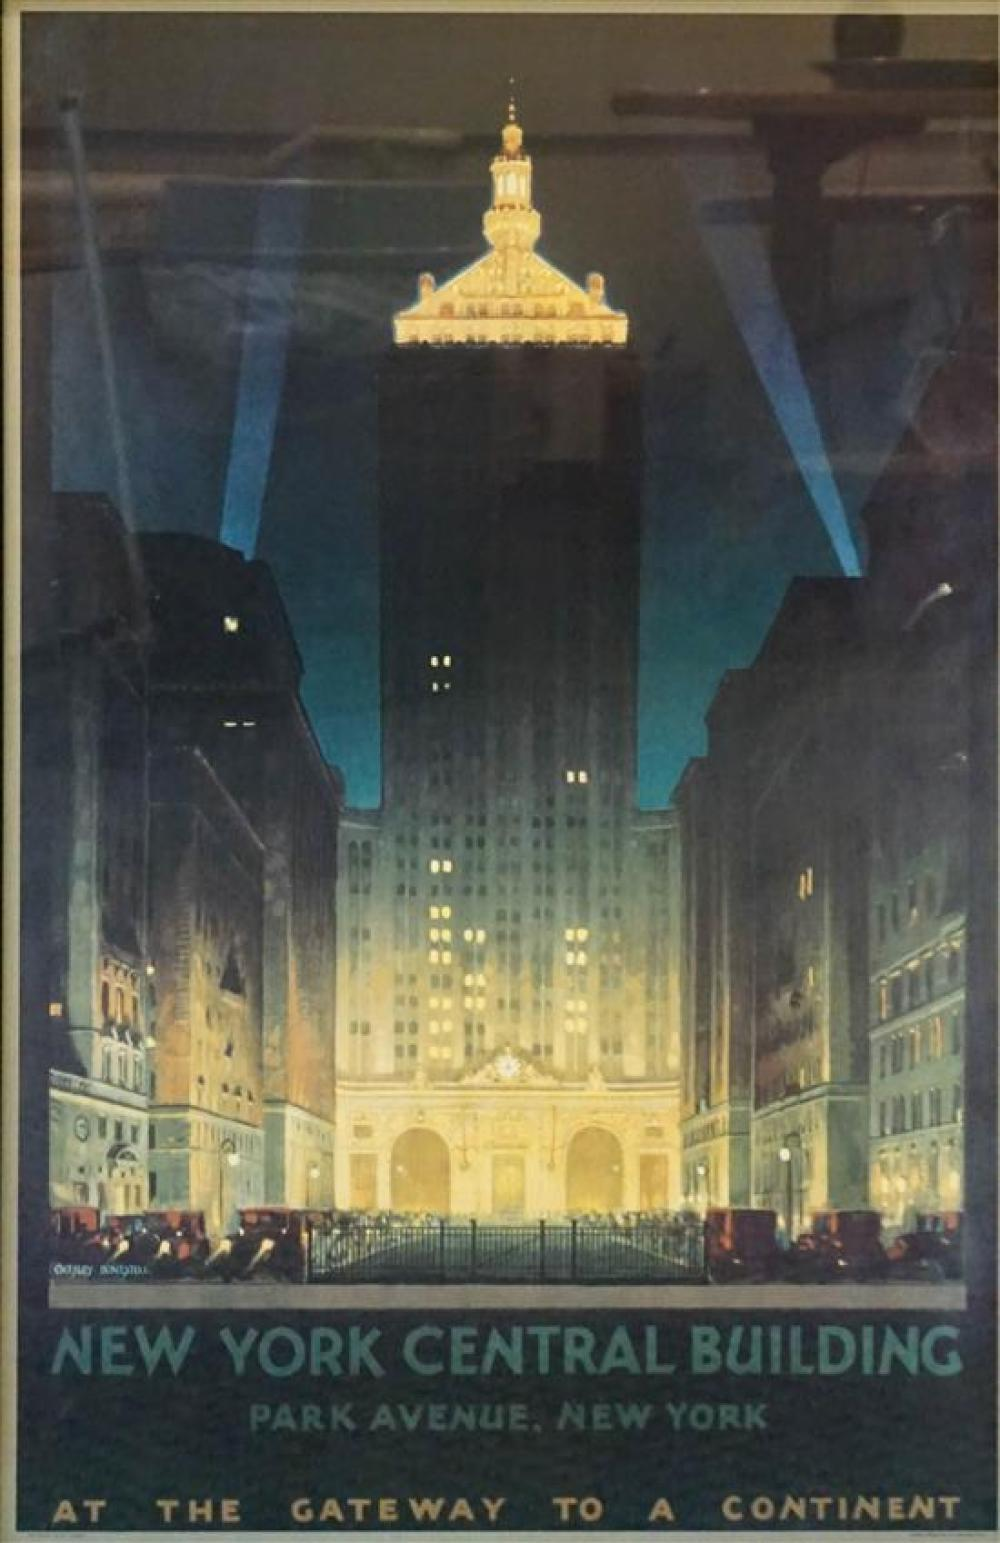 Framed New York Central Building Reproduction Poster, Frame: 40 x 27-1/4 in